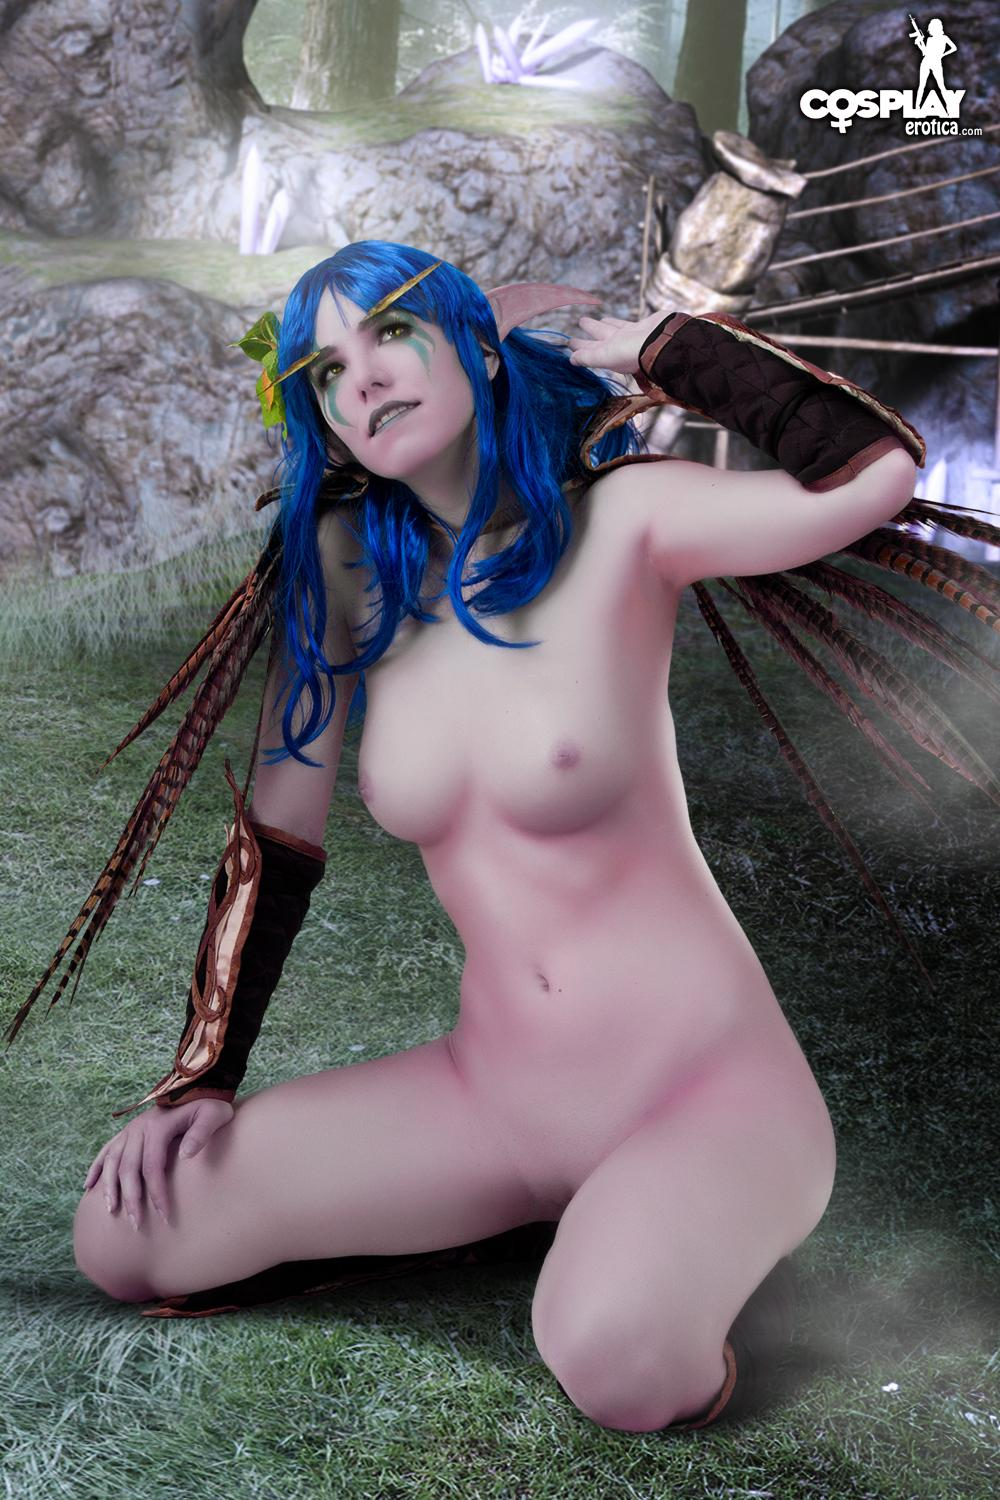 Warcraft cosplay porn pictures adult movie